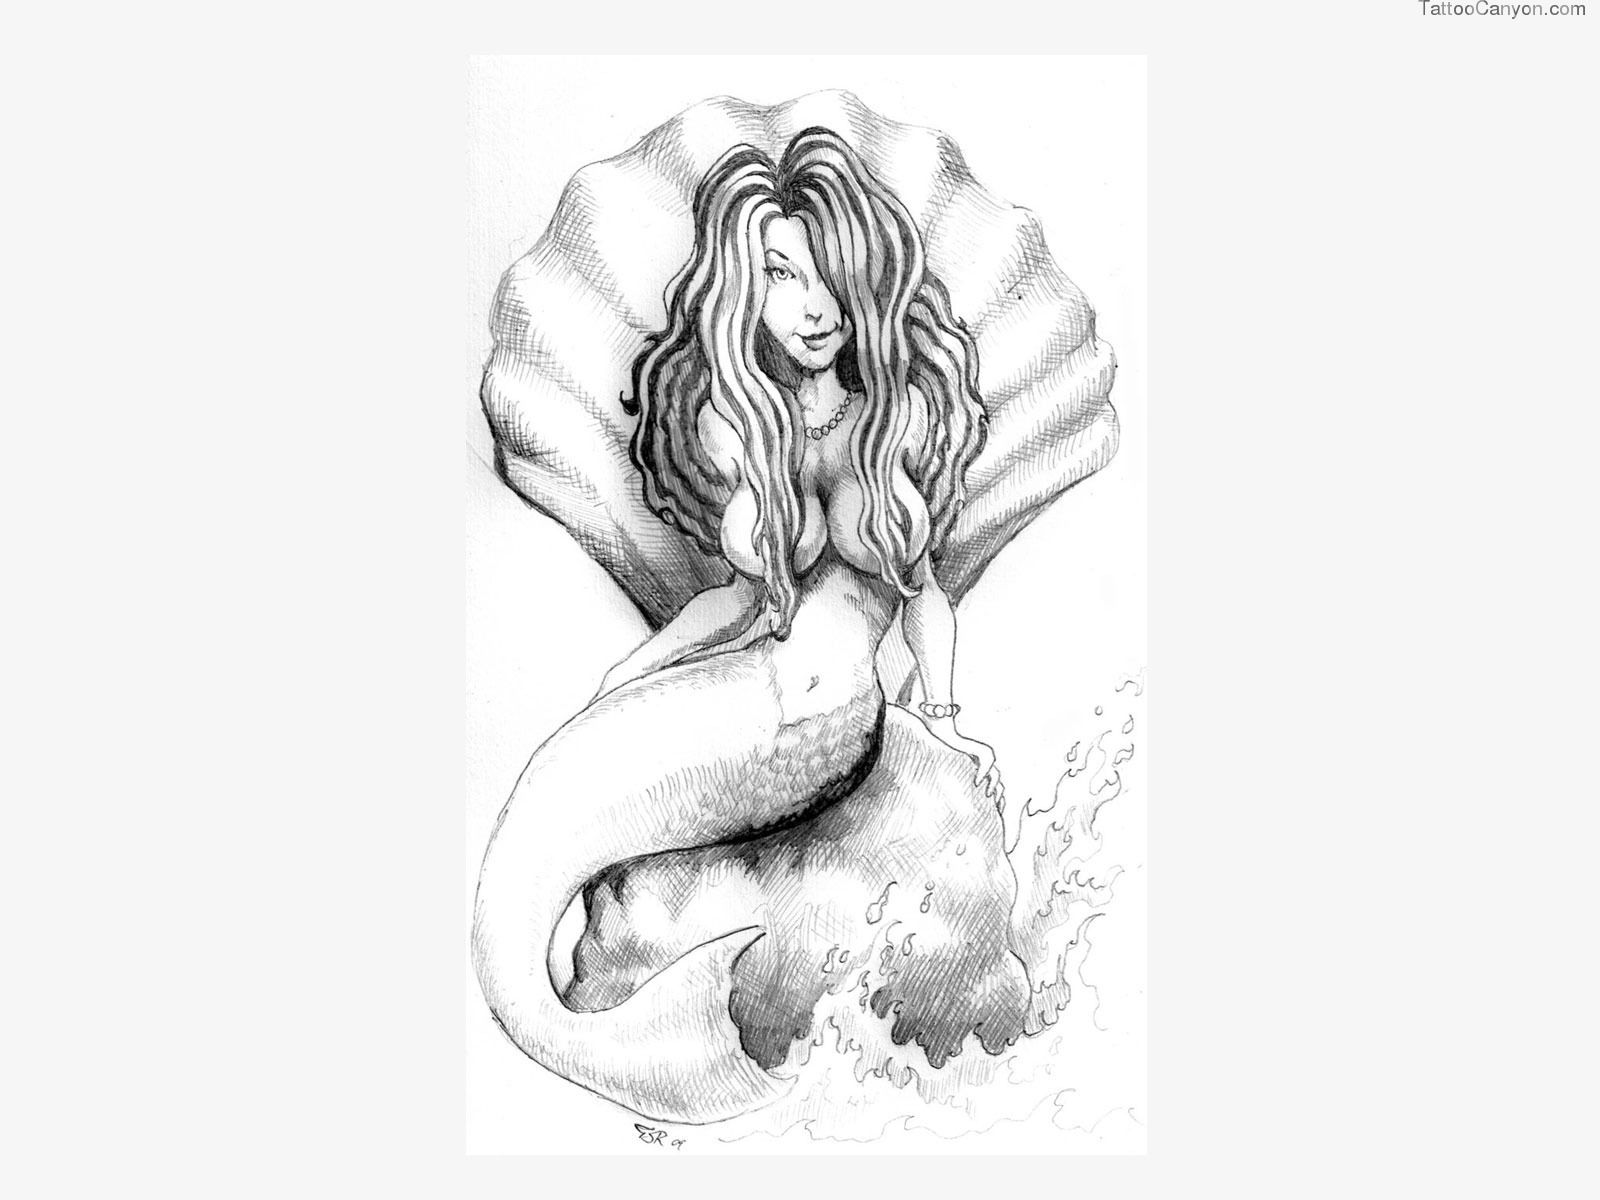 Free Designs Mermaid Is Sitting On The Stone Tattoo Wallpaper Tattoo